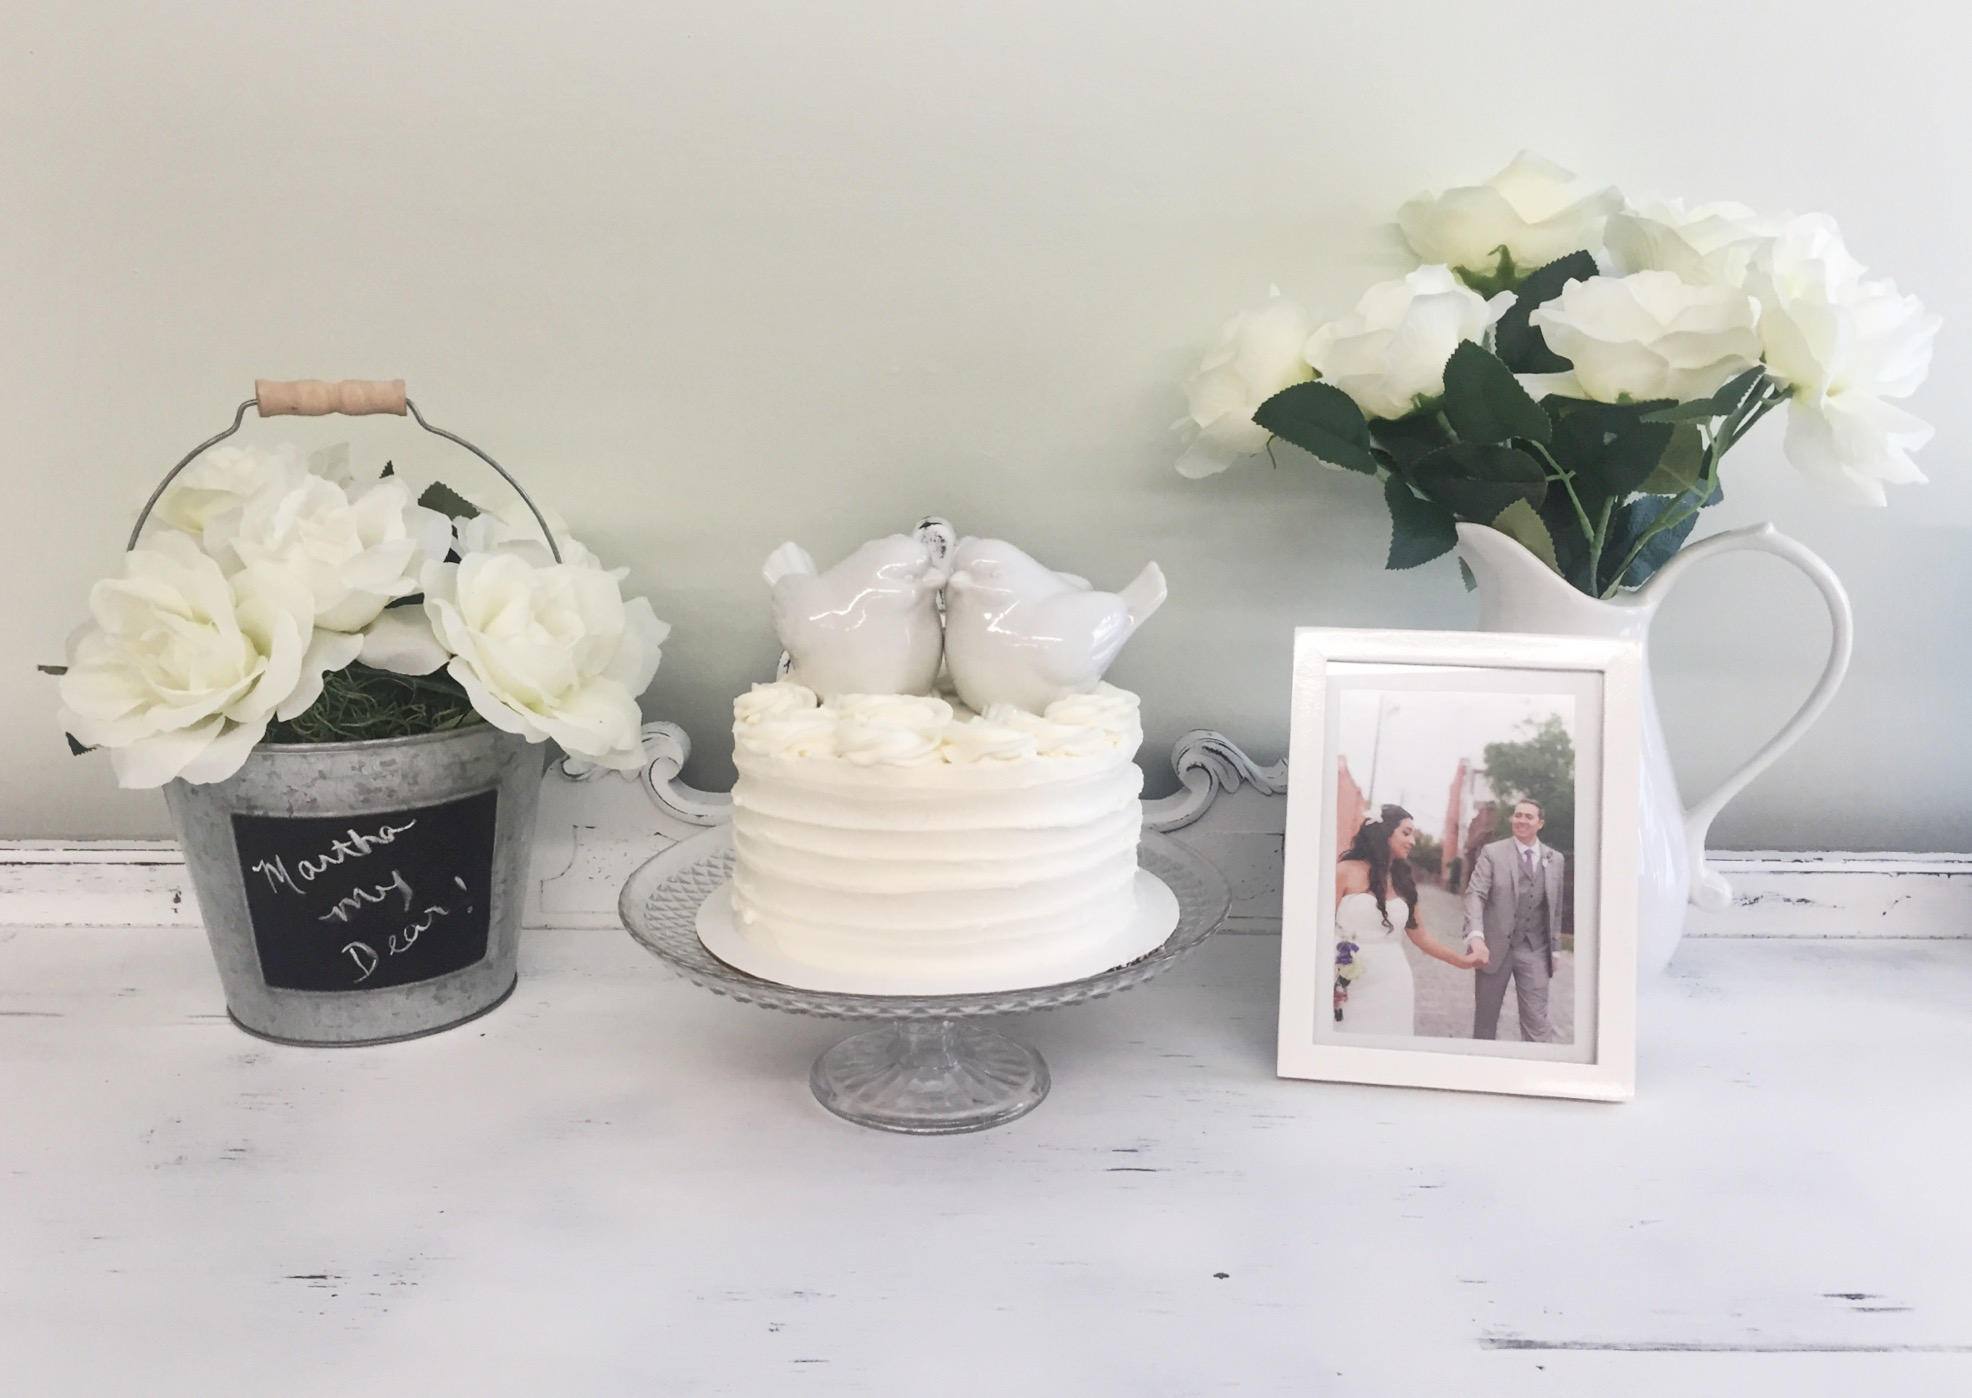 Mini wedding cake by Tammy Hodge with our wedding toppers!